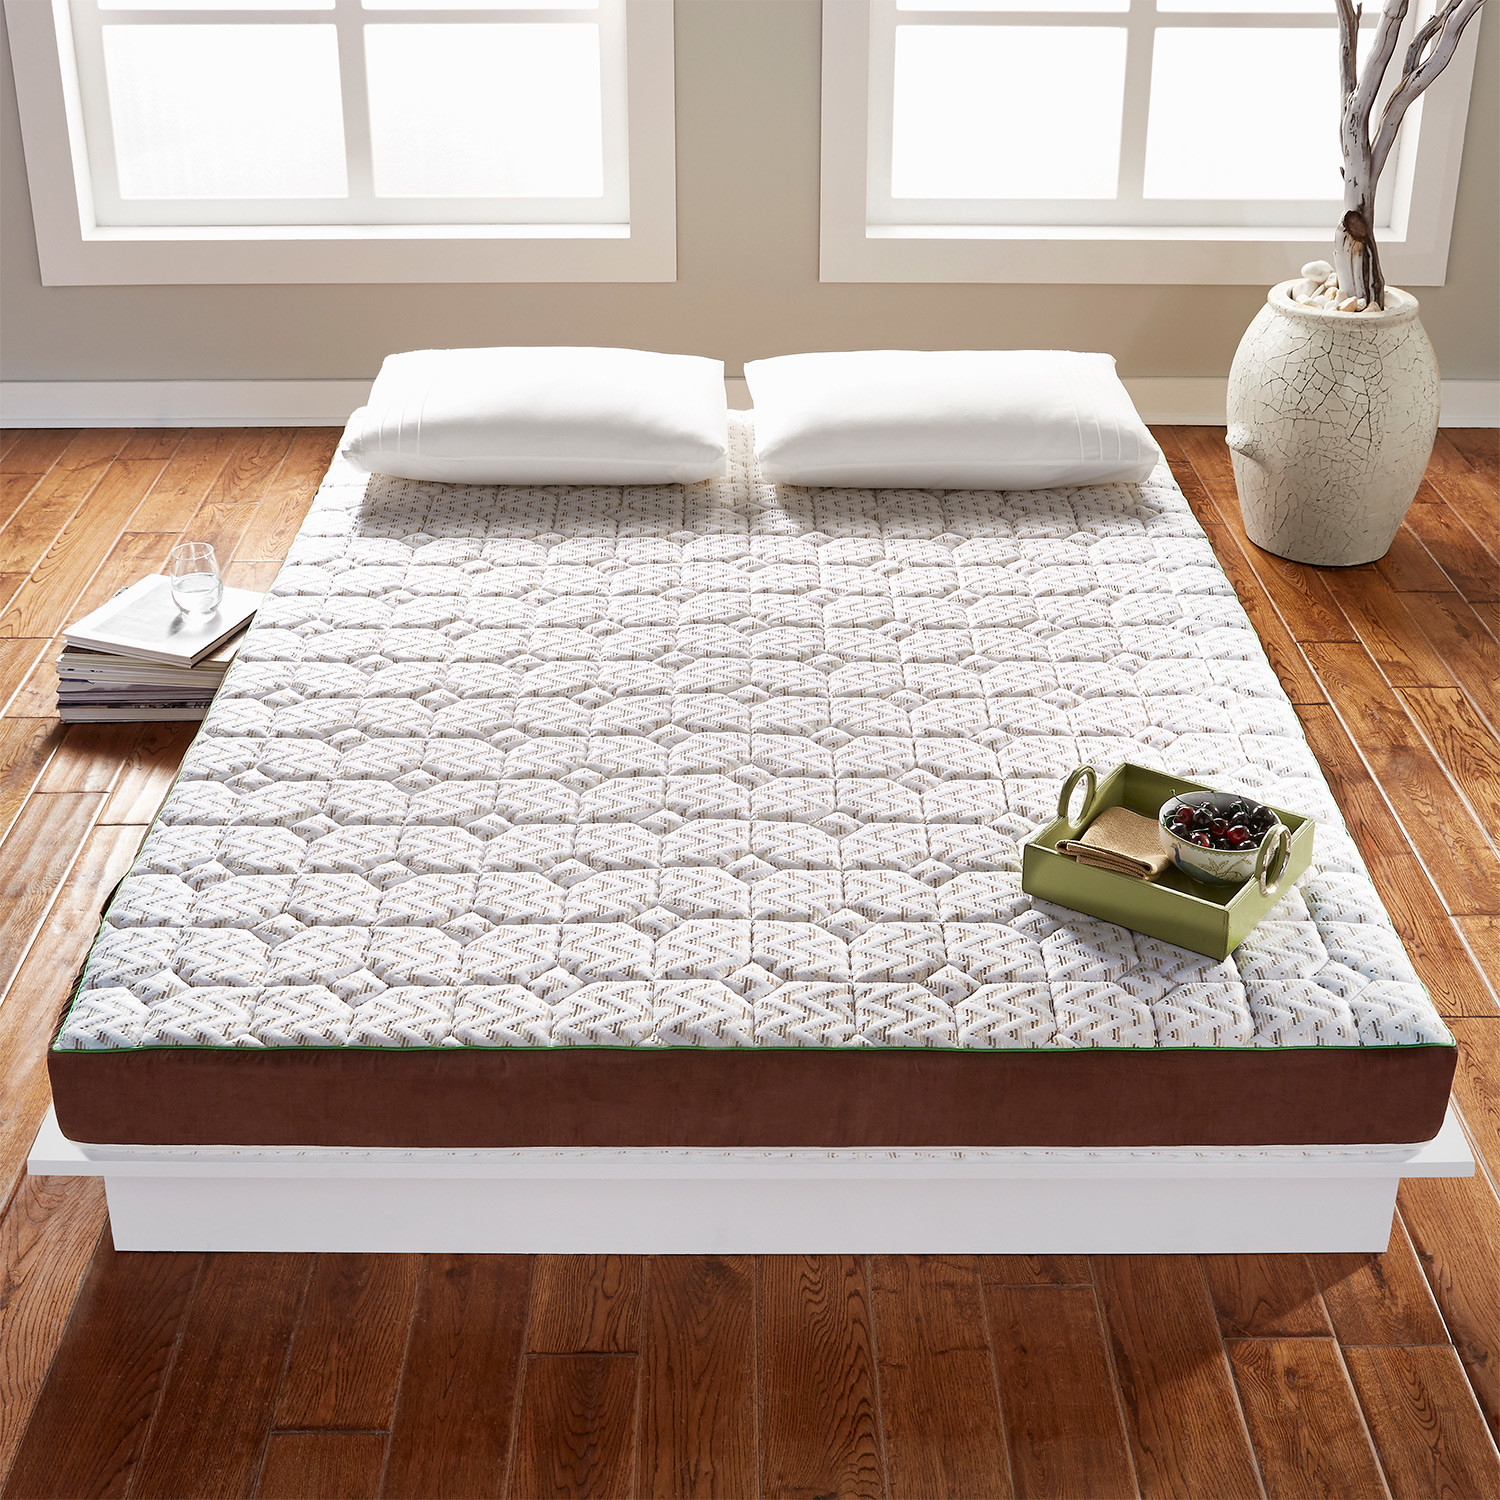 Tatame Bed Twin Sleep Yoga Touch Of Modern